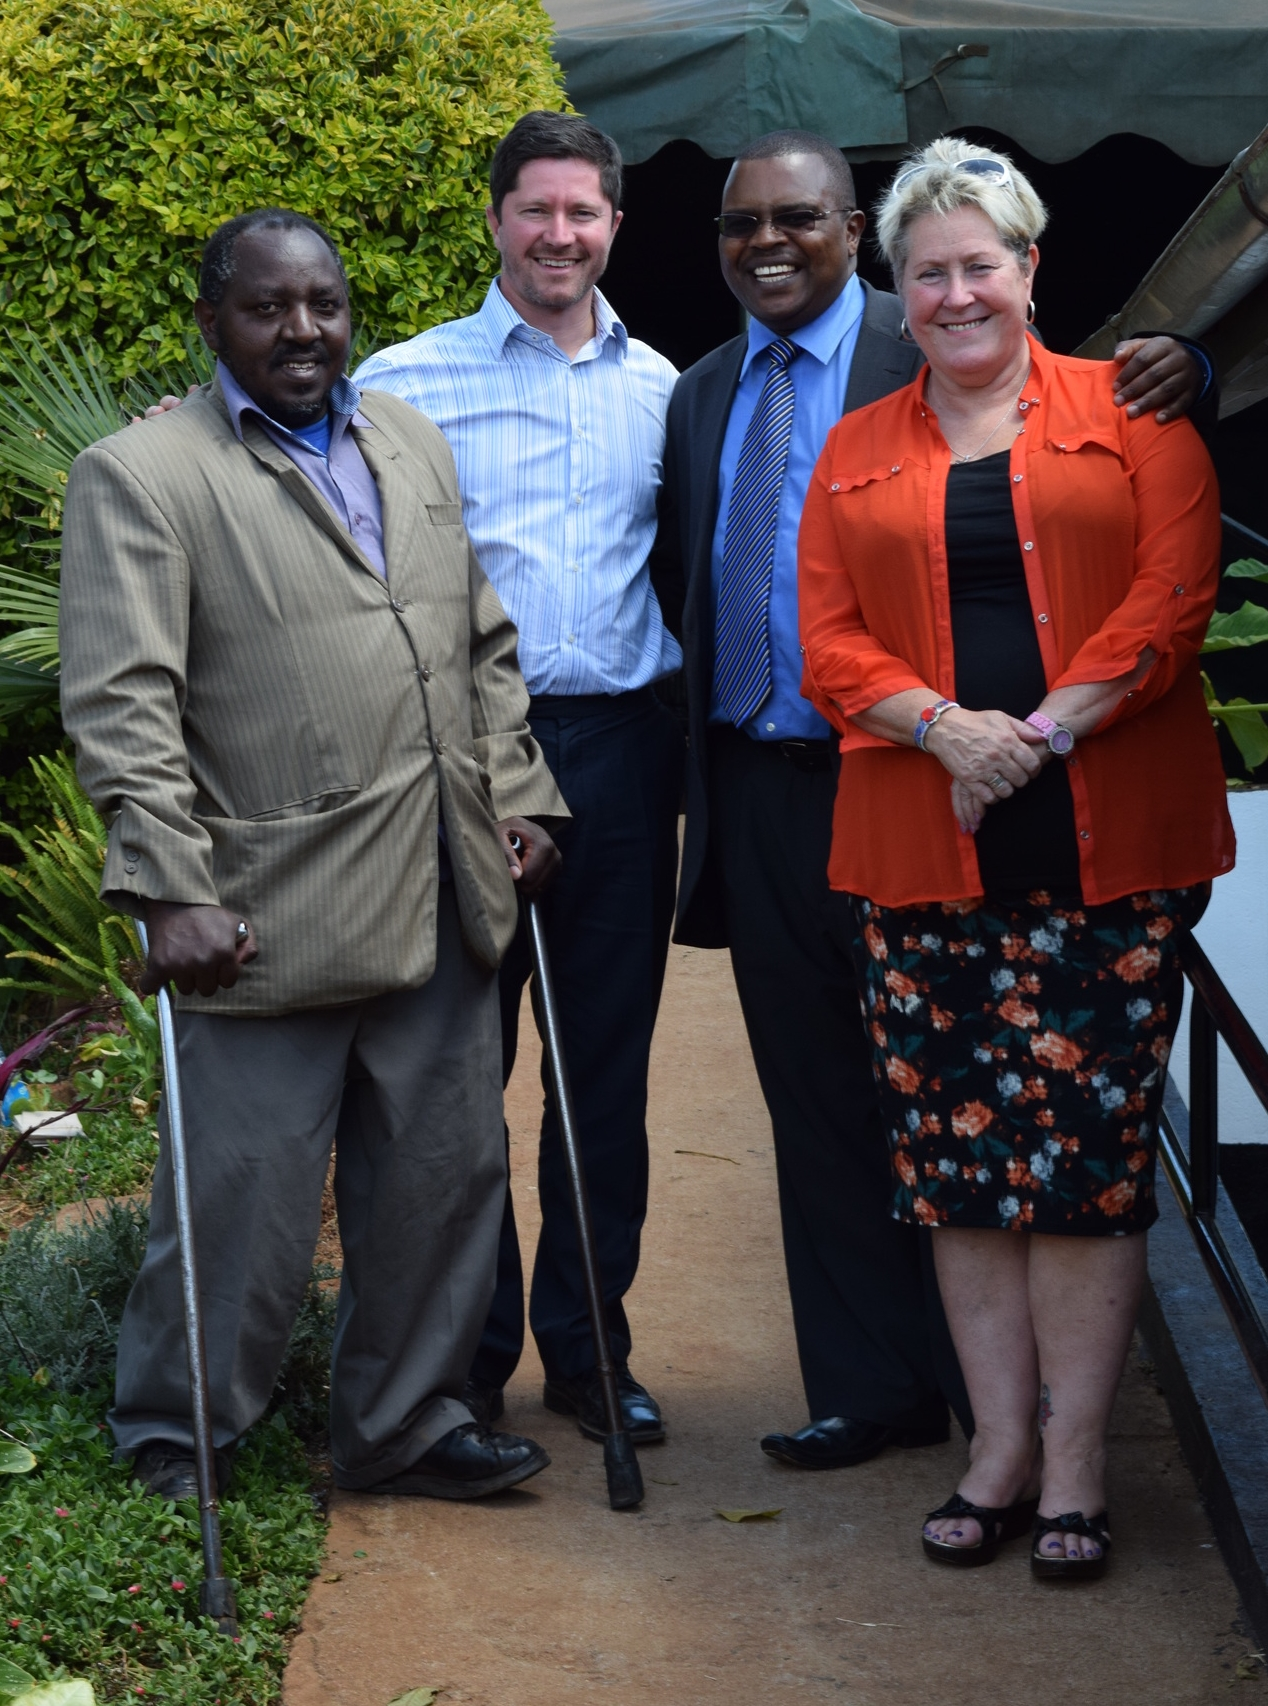 Pastor David Murray and Mrs Terry Fairfowl meet with the Hon. David Mwangi Mugo(centre right), and with the Hon. Joseph King'ori, the Nyeri County Representative for Persons with Disability, for a tour of the facilities at the Sanctuary.